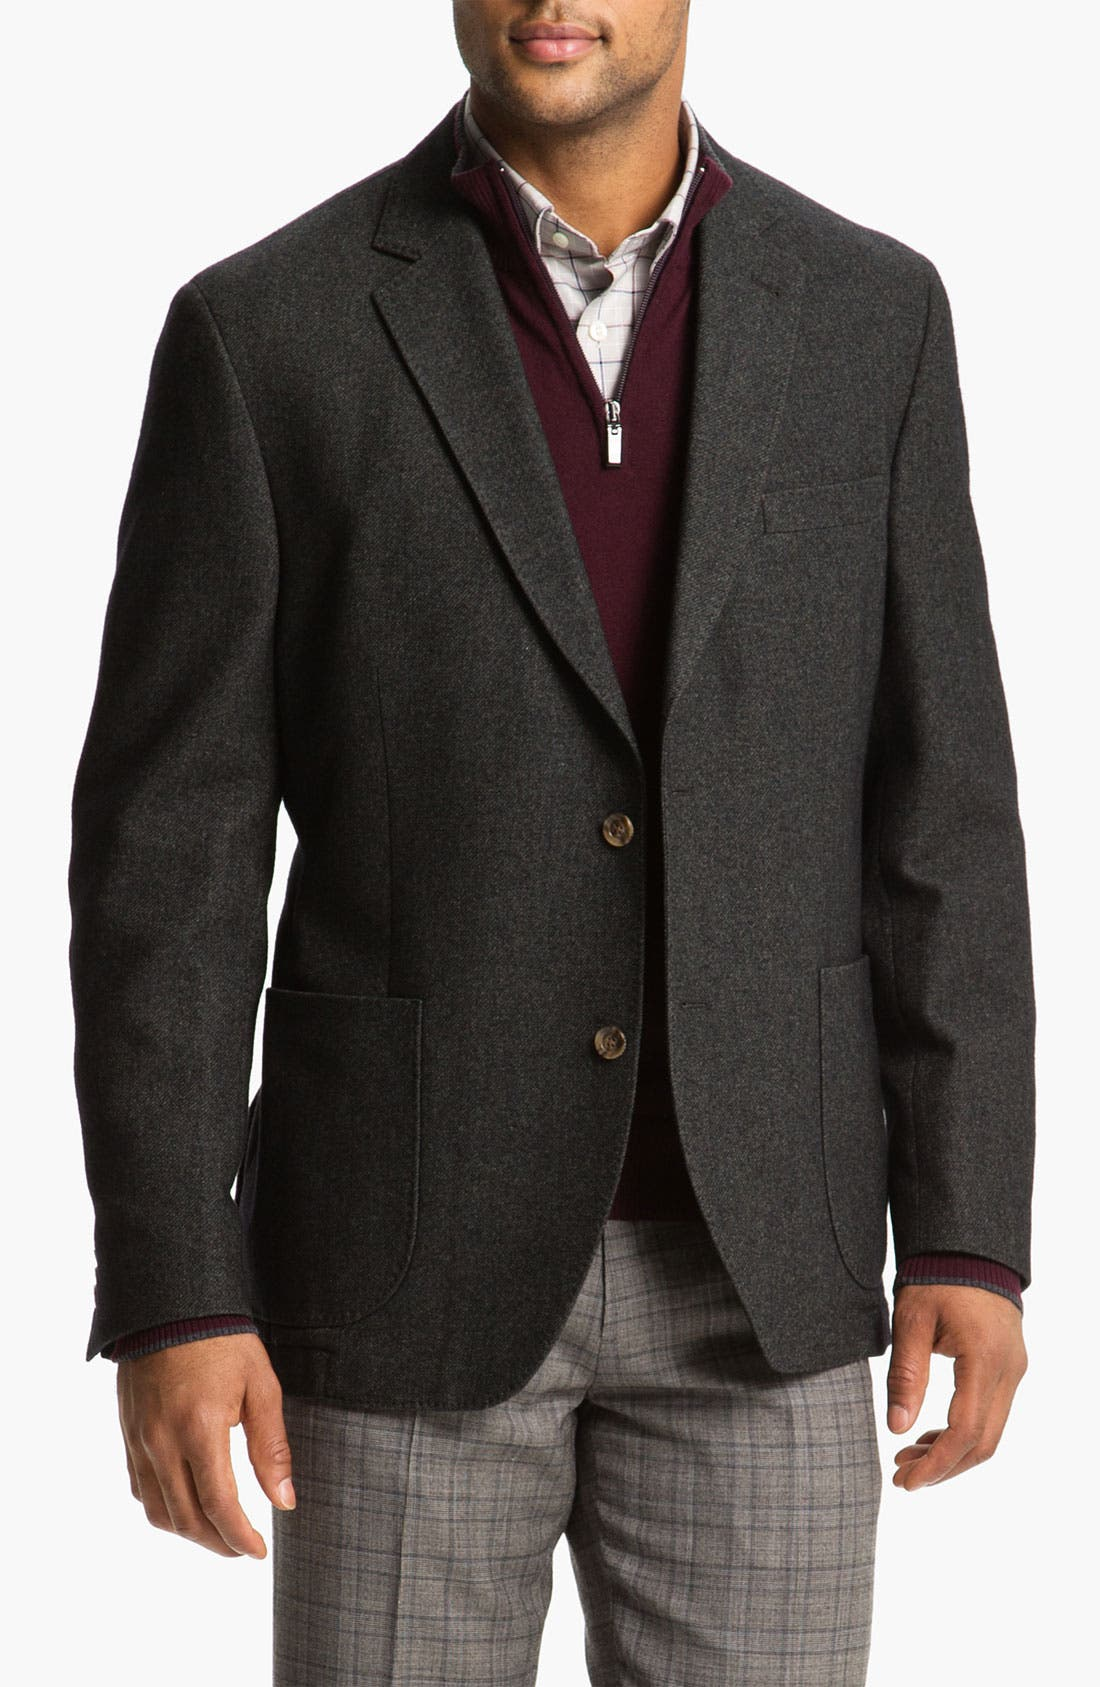 Alternate Image 1 Selected - Kroon 'Bono' Wool Blend Sportcoat